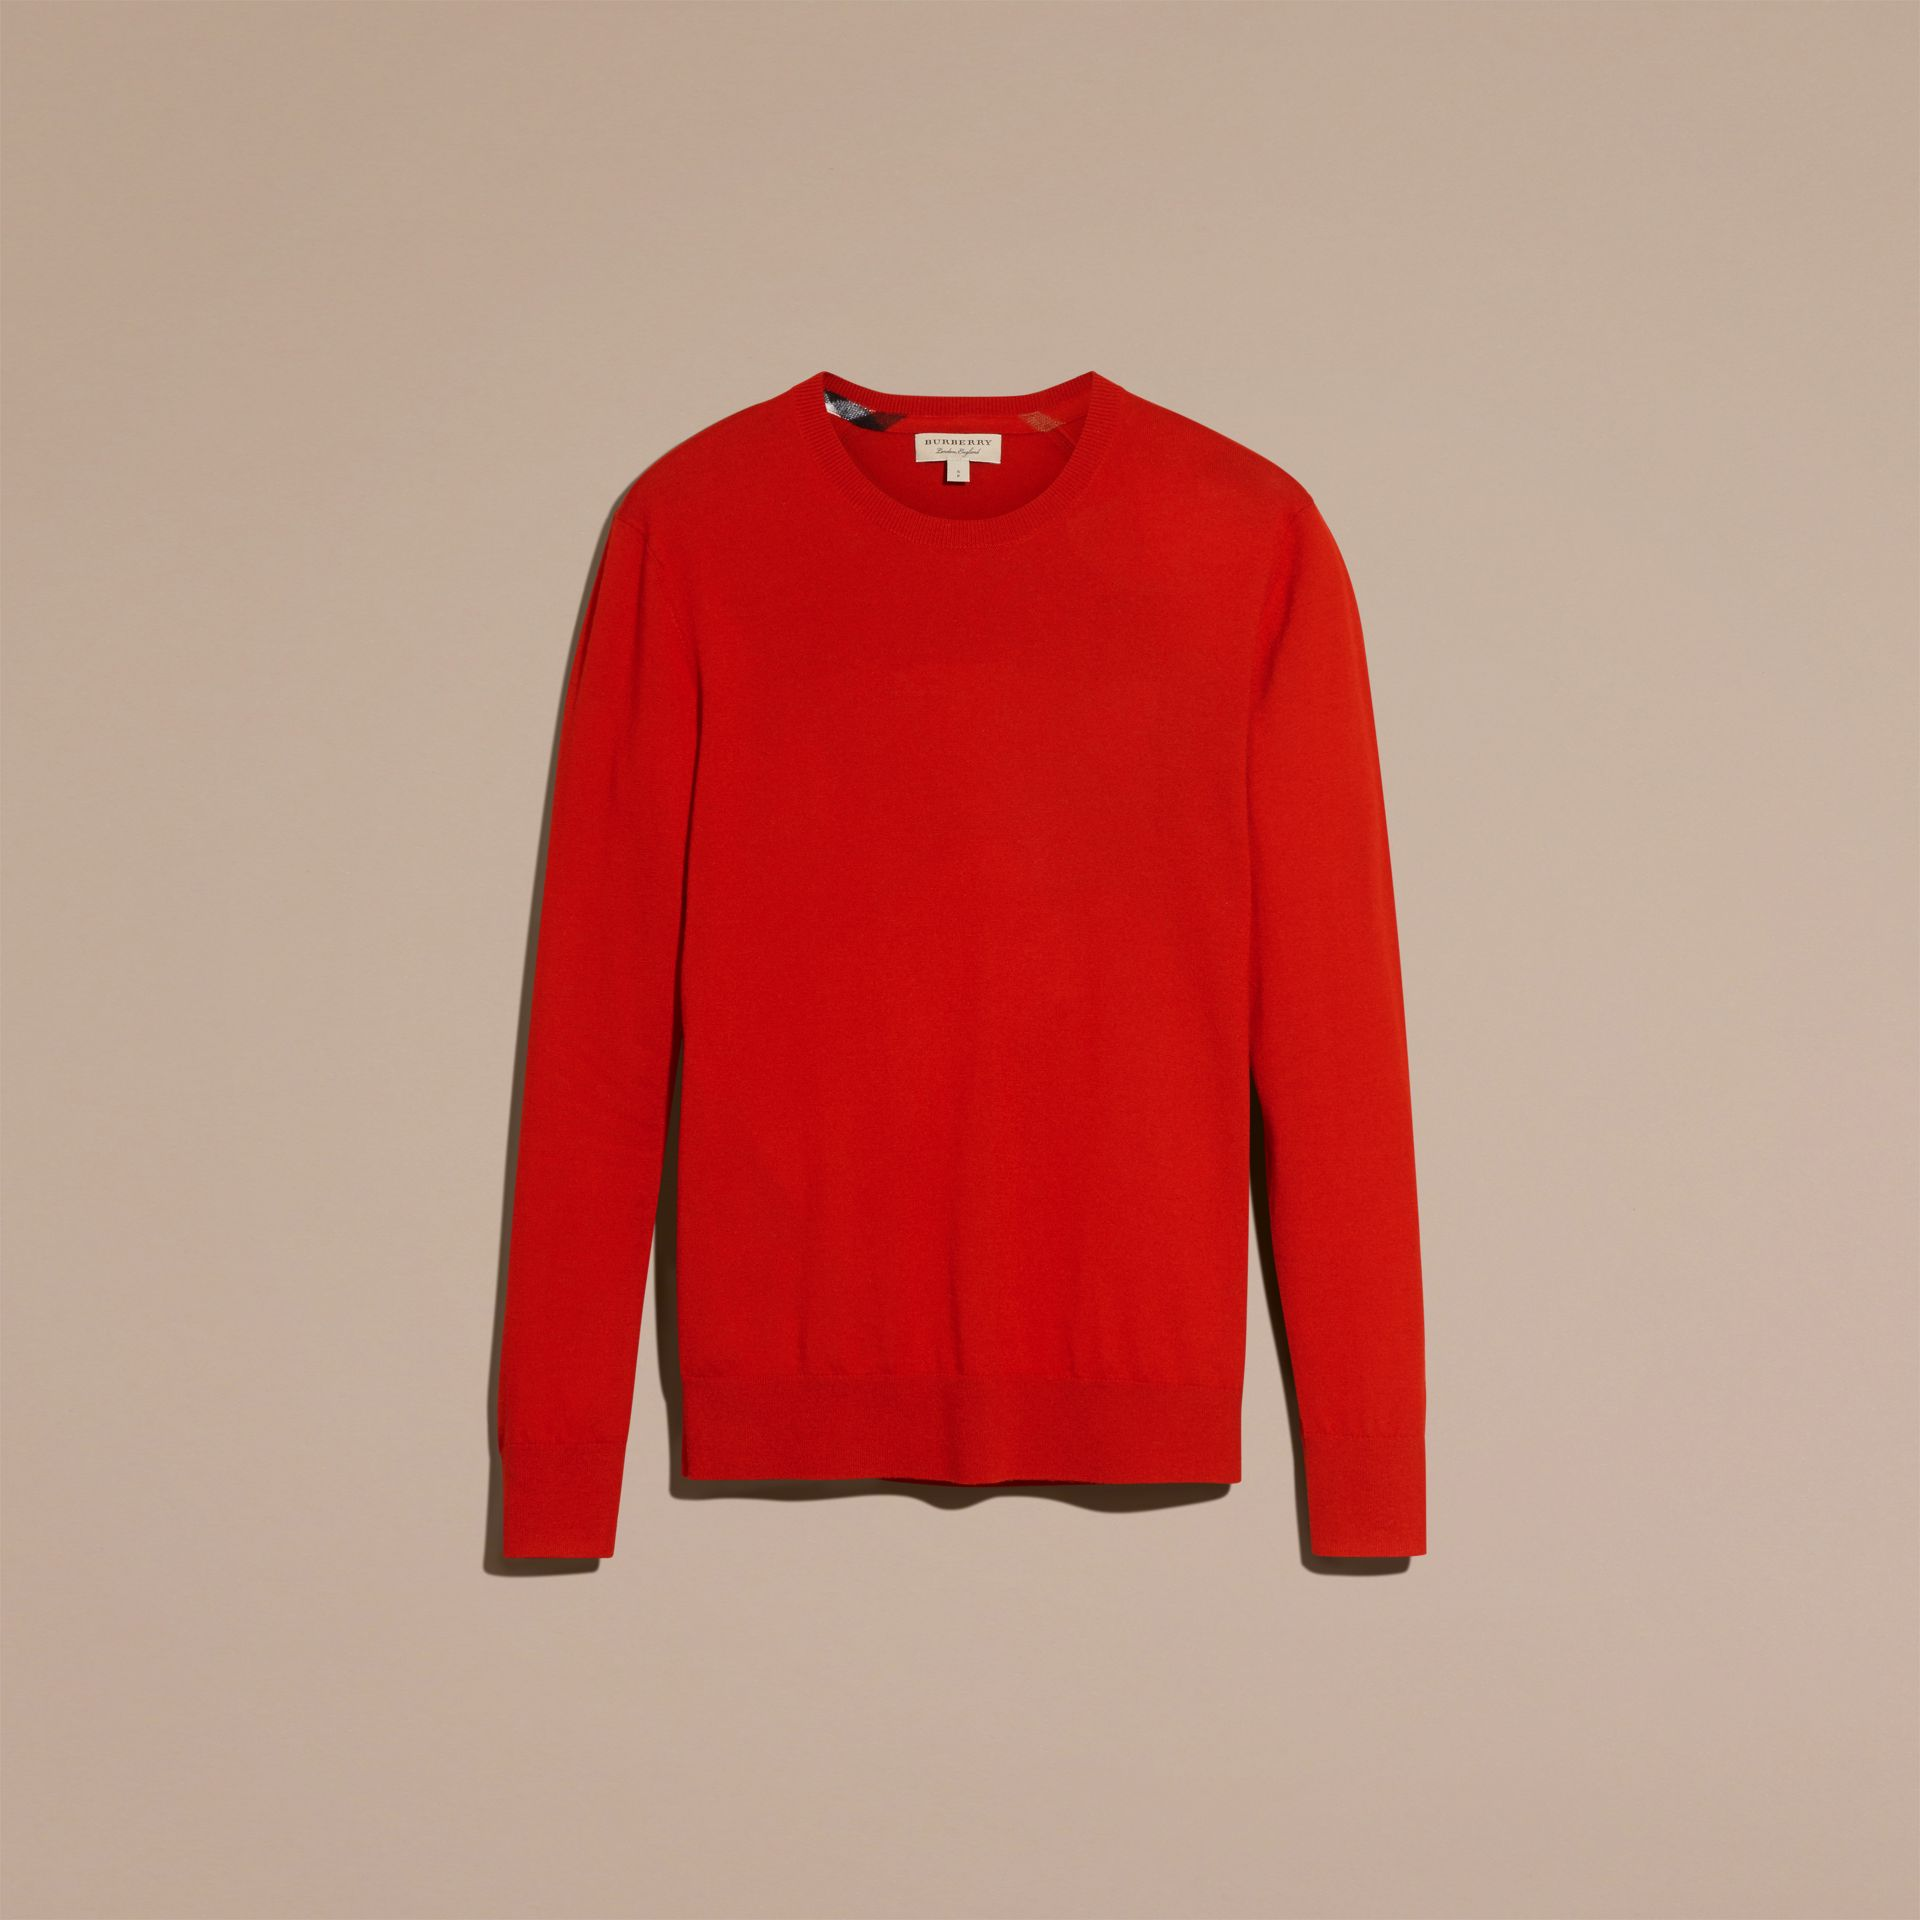 Lightweight Crew Neck Cashmere Sweater with Check Trim in Parade Red - Men | Burberry - gallery image 4